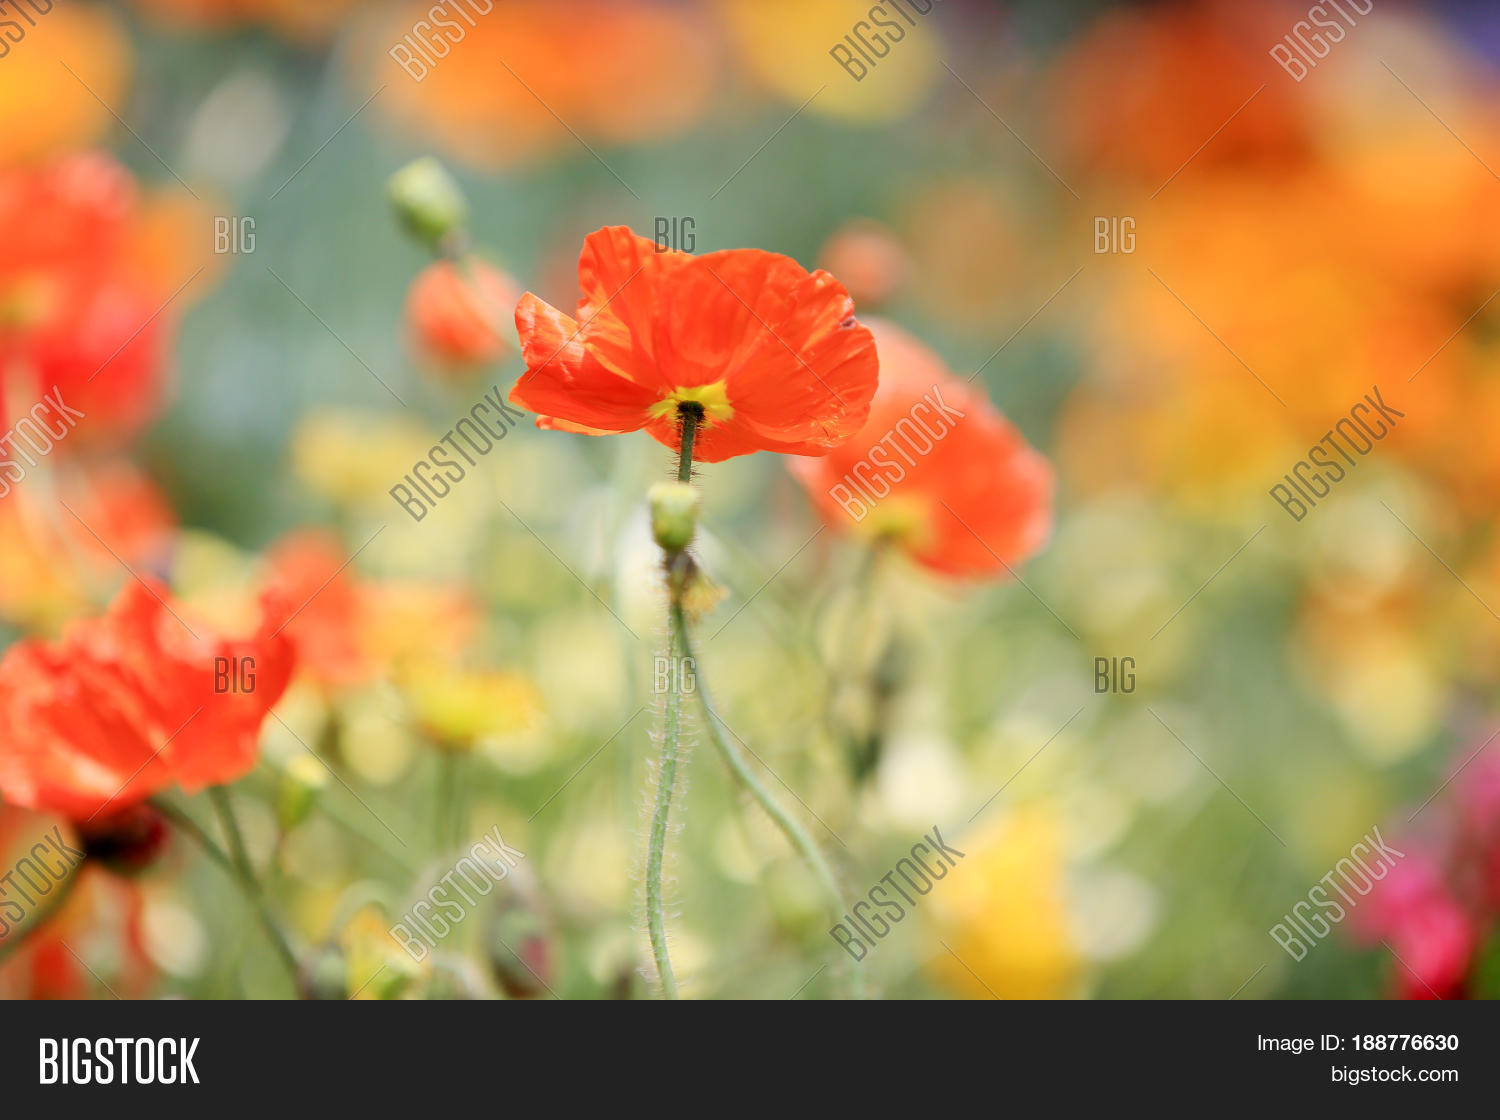 California Poppy Image Photo Free Trial Bigstock